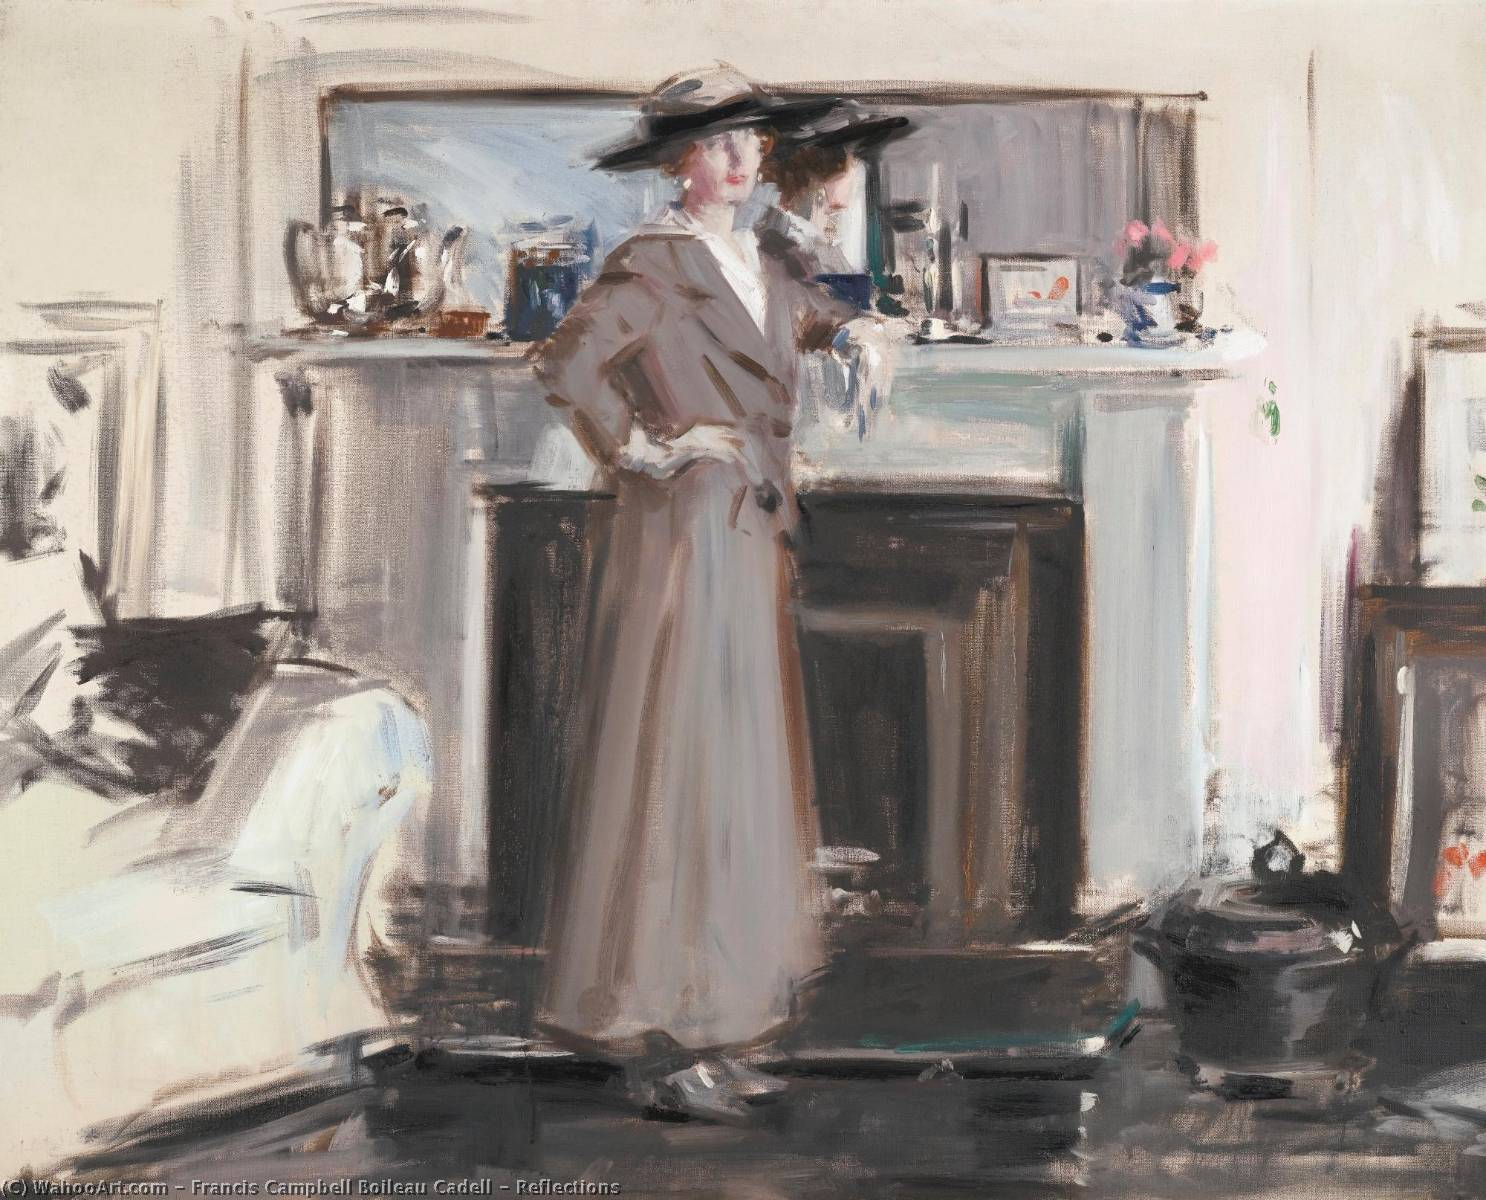 Reflections, Canvas by Francis Campbell Boileau Cadell (1883-1937)